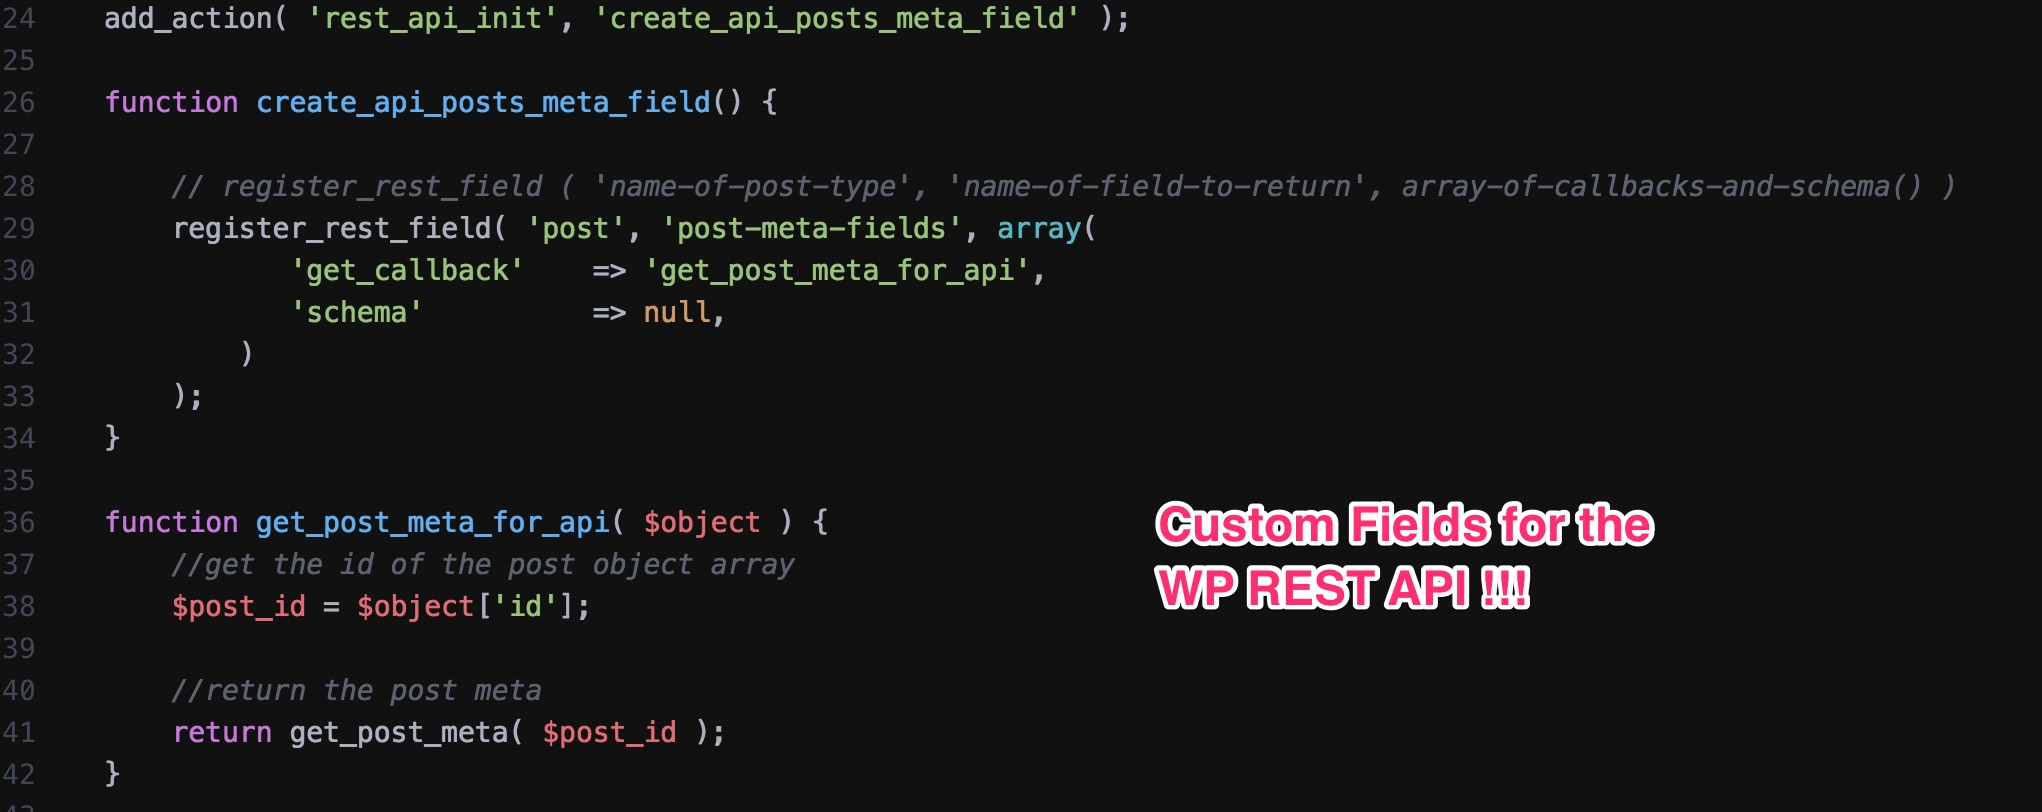 Getting Post Meta for the WP REST API